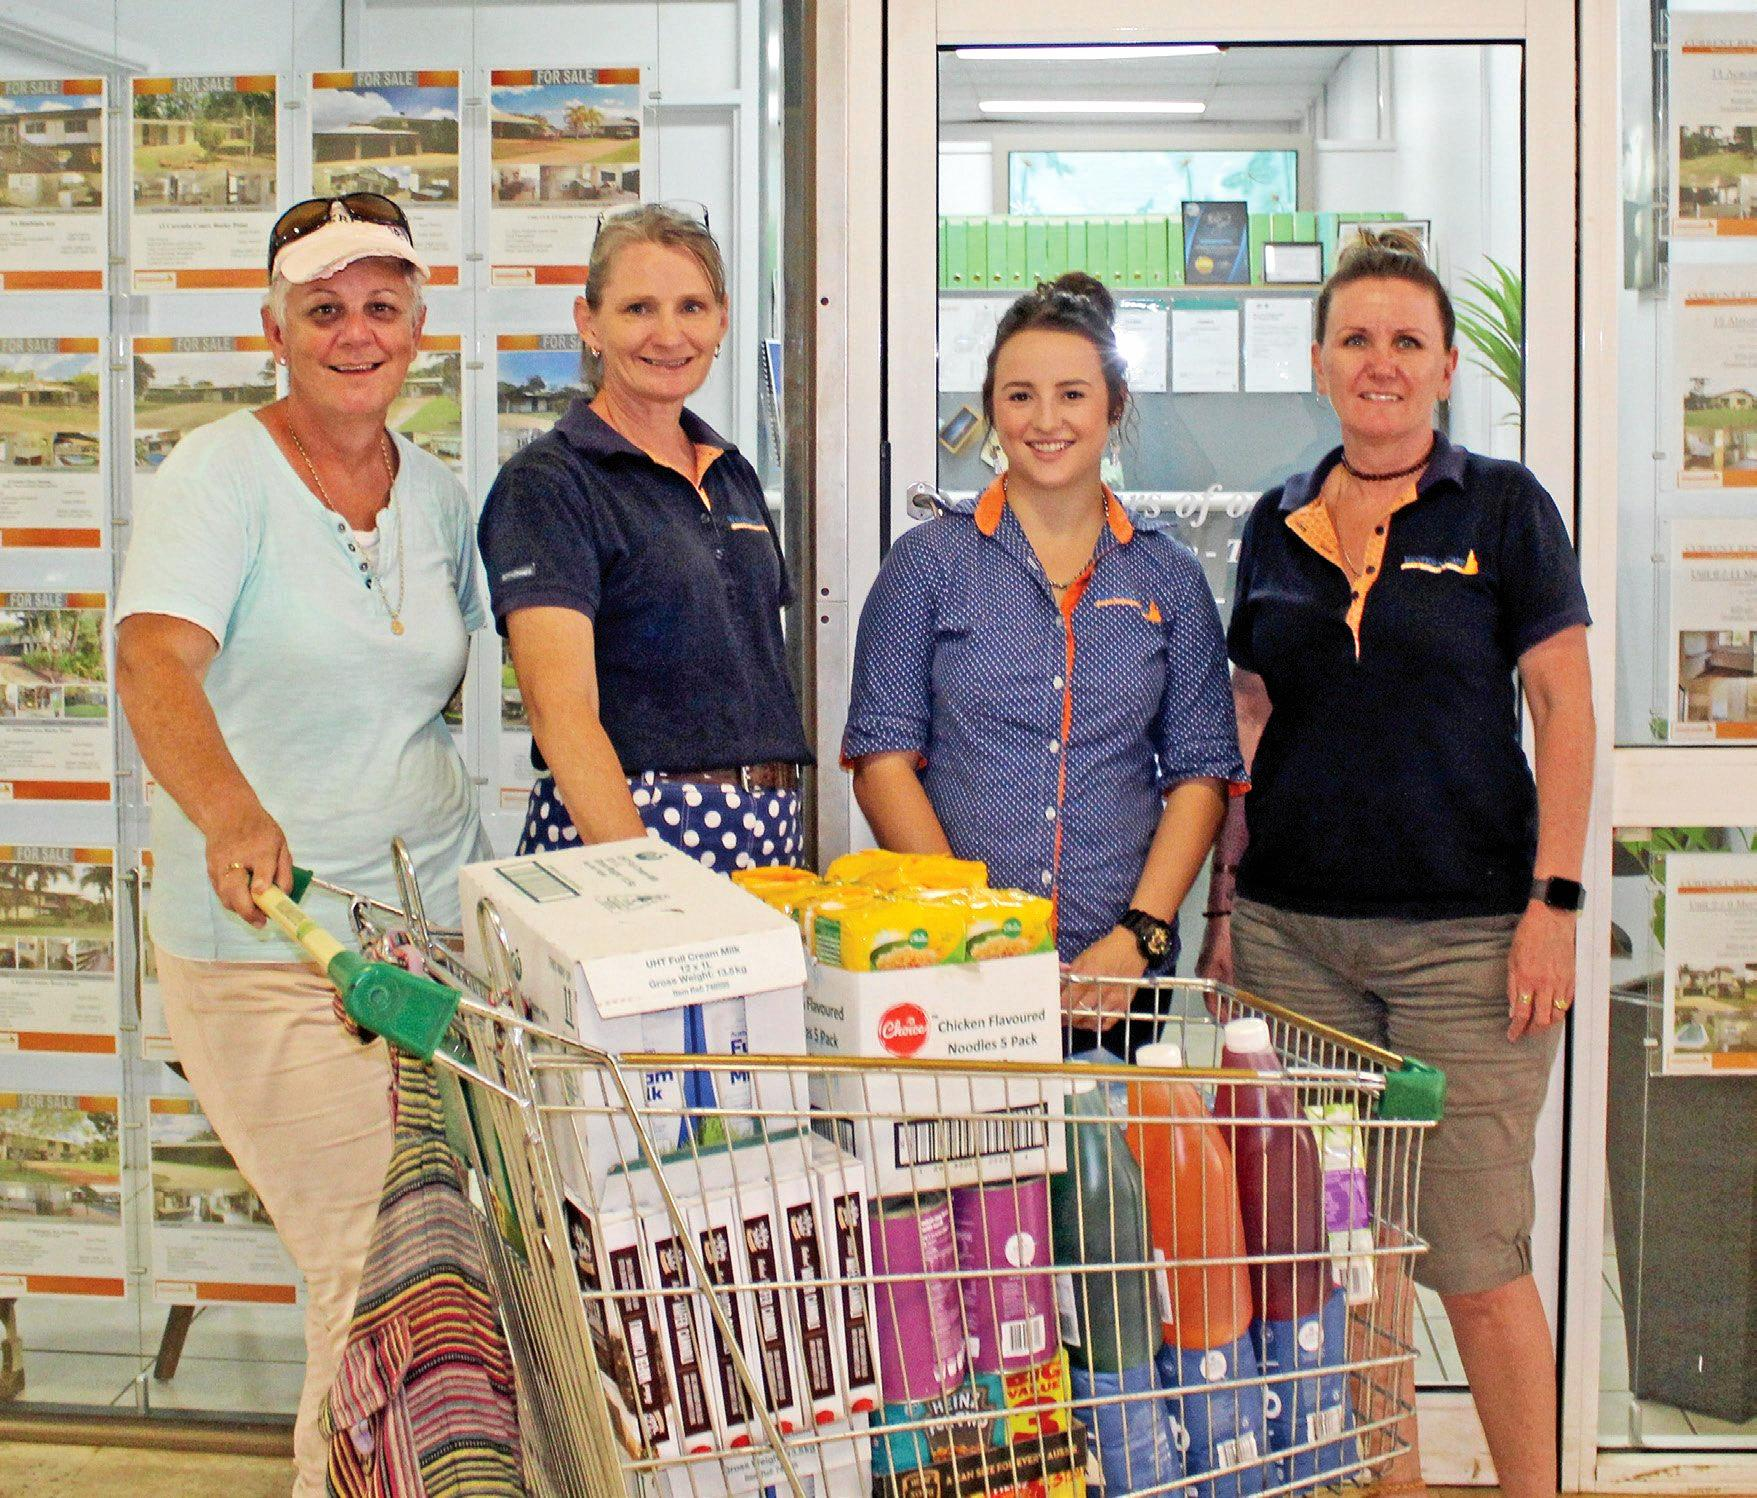 With some donations are (from left) Jane English with Sandy Aldcroft, Shayna Reeves and Helen Vanbrugh of Western Cape Real Estate.